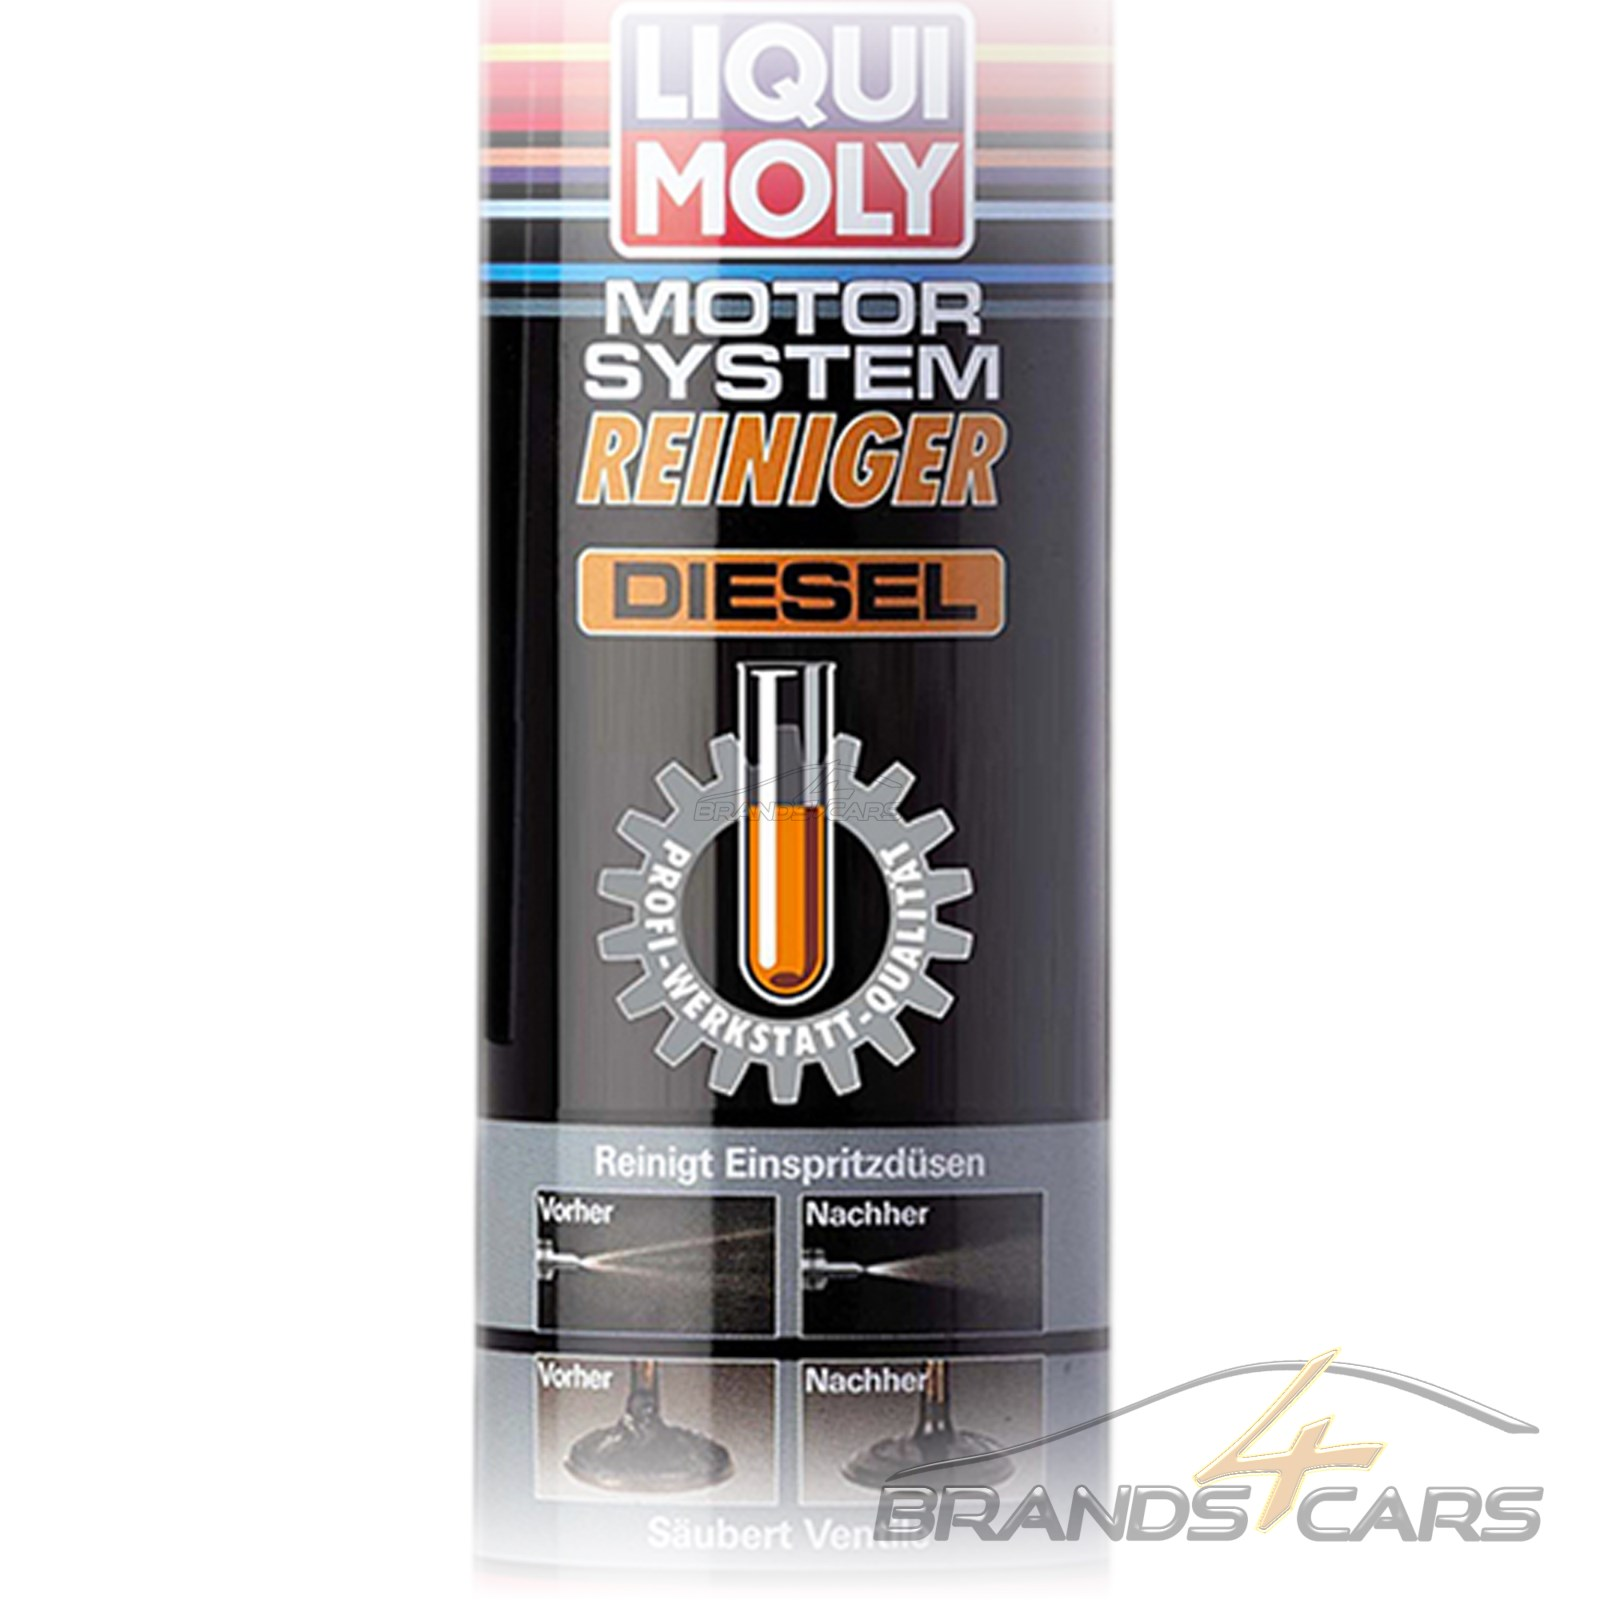 6x 300ml liqui moly motor system reiniger diesel systemreiniger dieselzusatz ebay. Black Bedroom Furniture Sets. Home Design Ideas